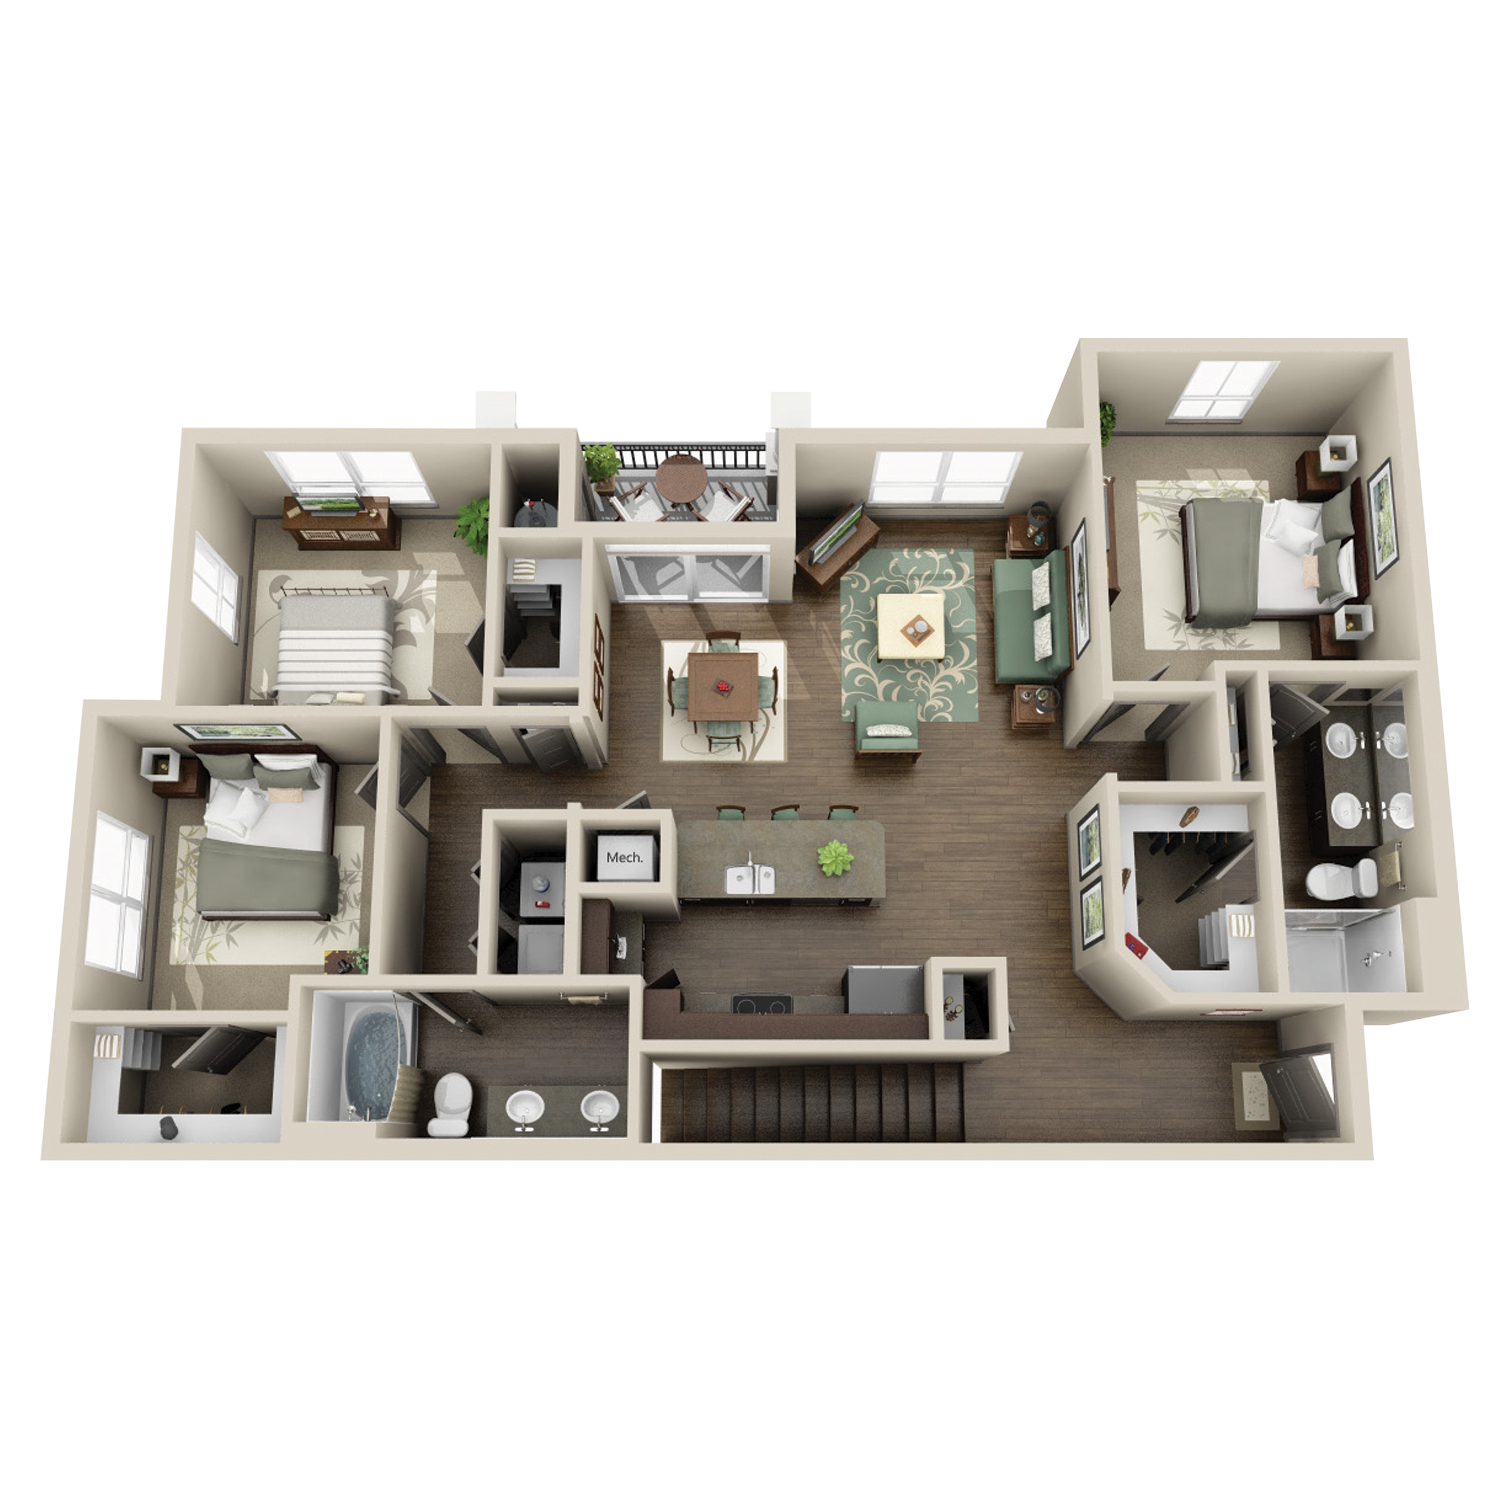 C1B floor plan featuring 3 beds and 2 baths